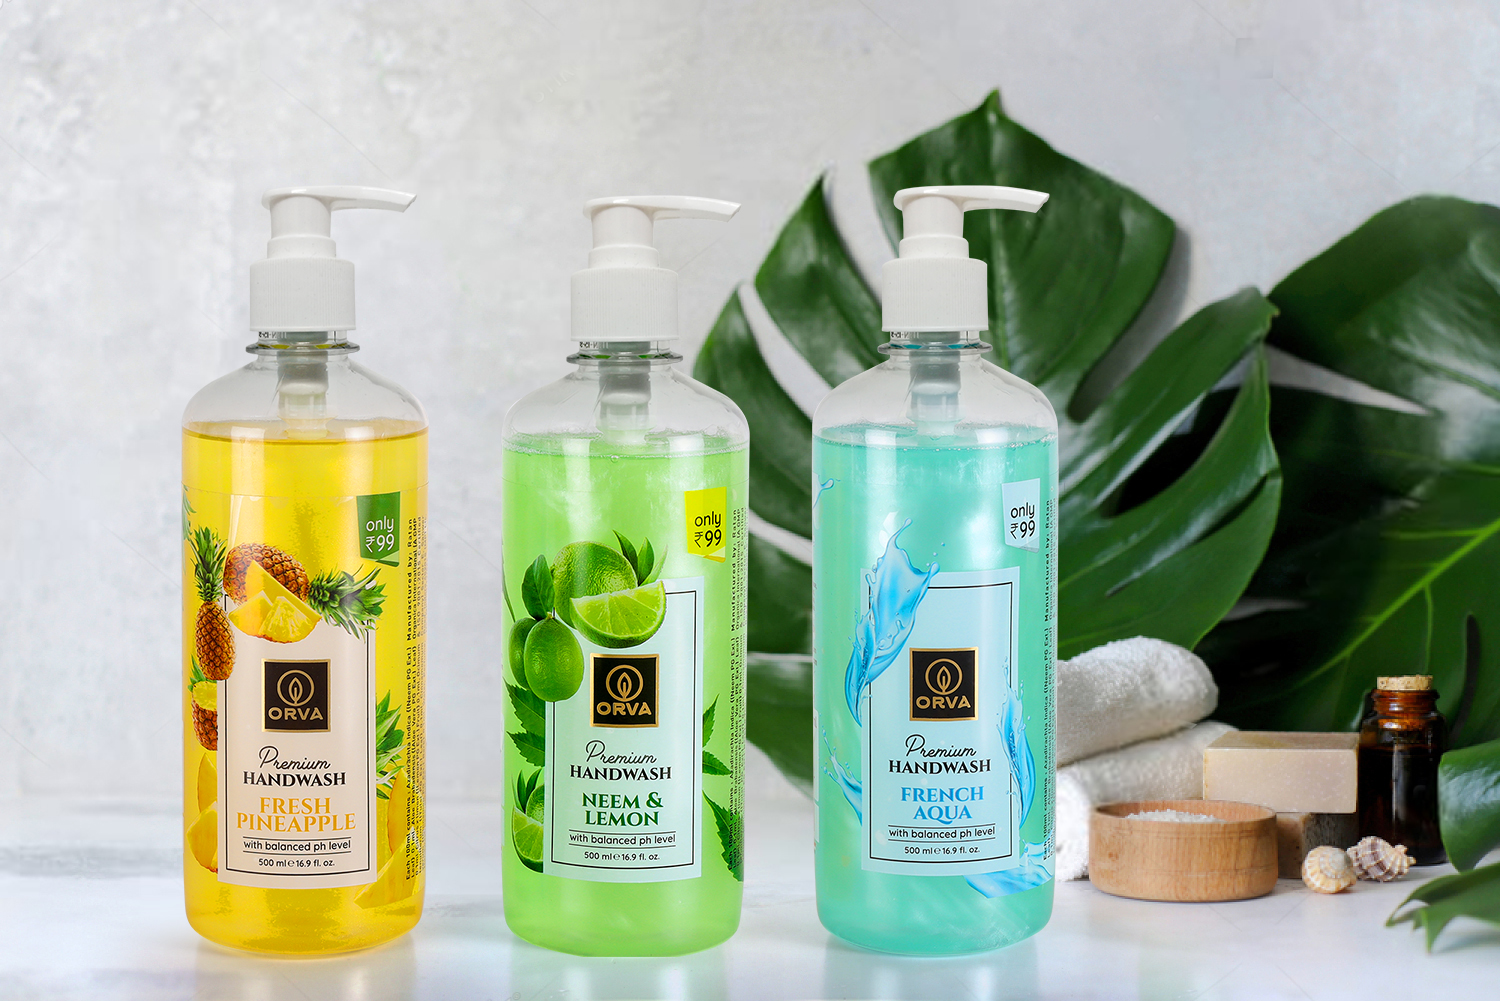 mdph launches orva hand wash